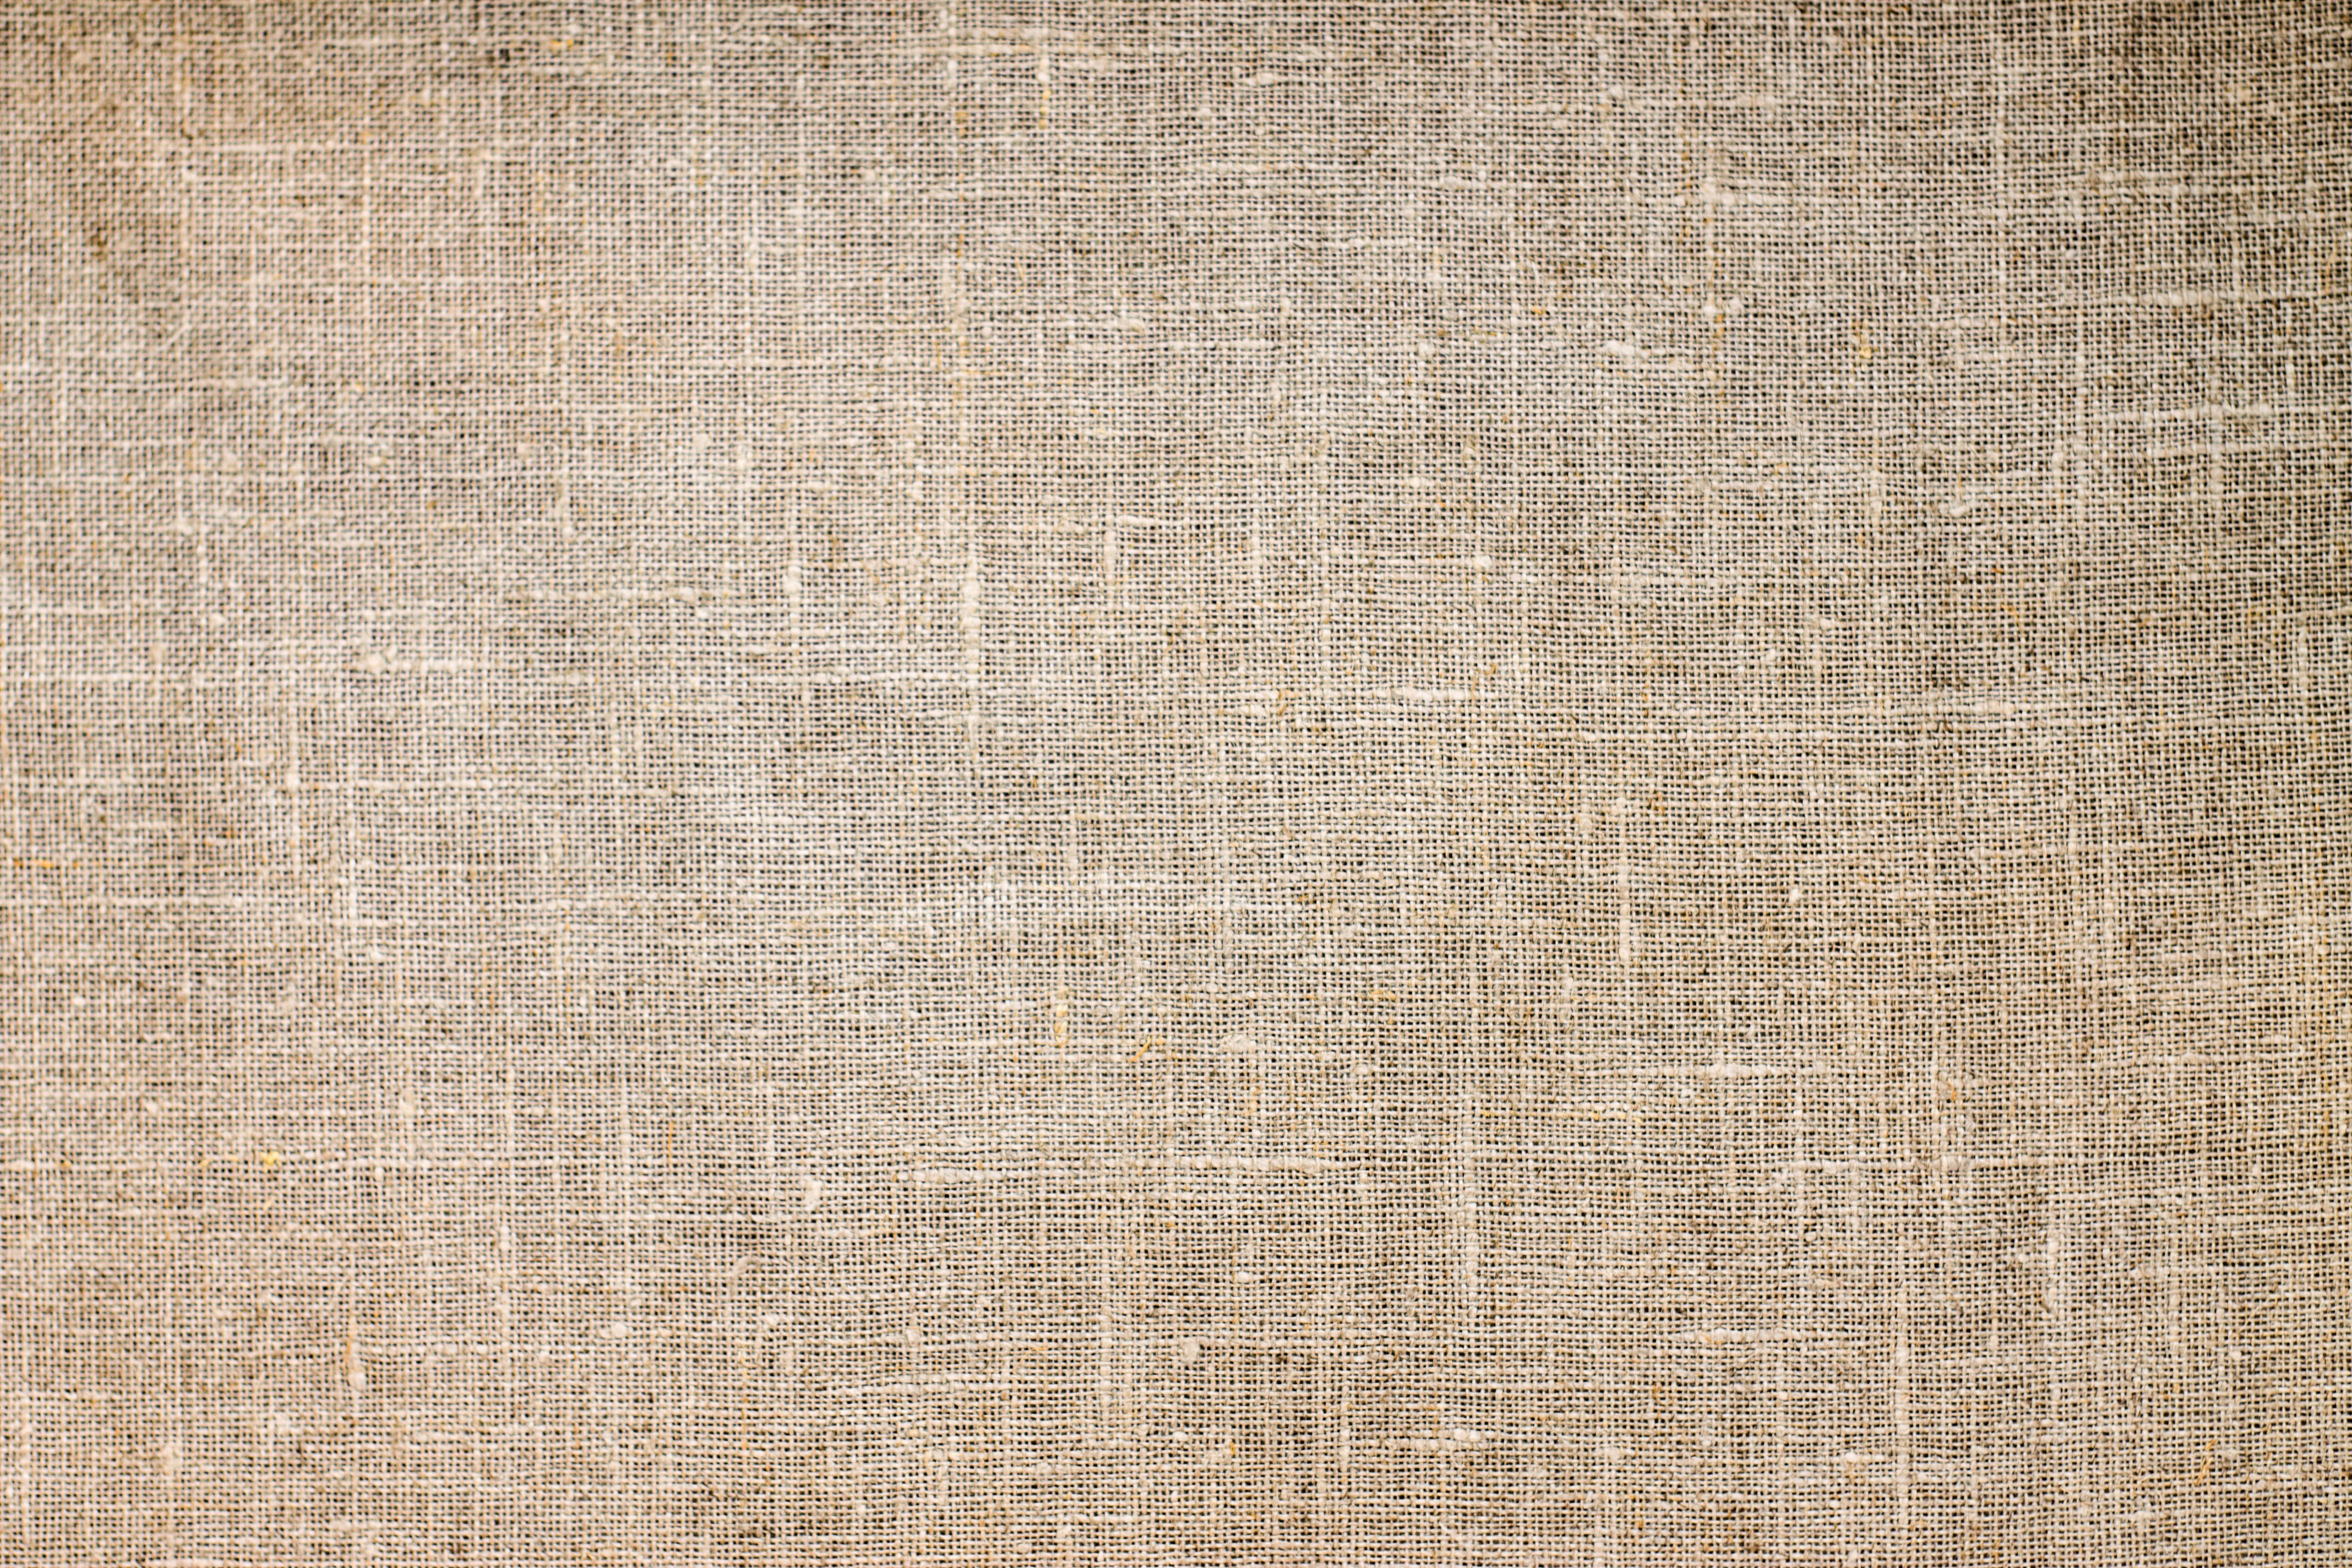 Fabric Texture Pattern 5k Hd Artist 4k Wallpapers Images Backgrounds Photos And Pictures